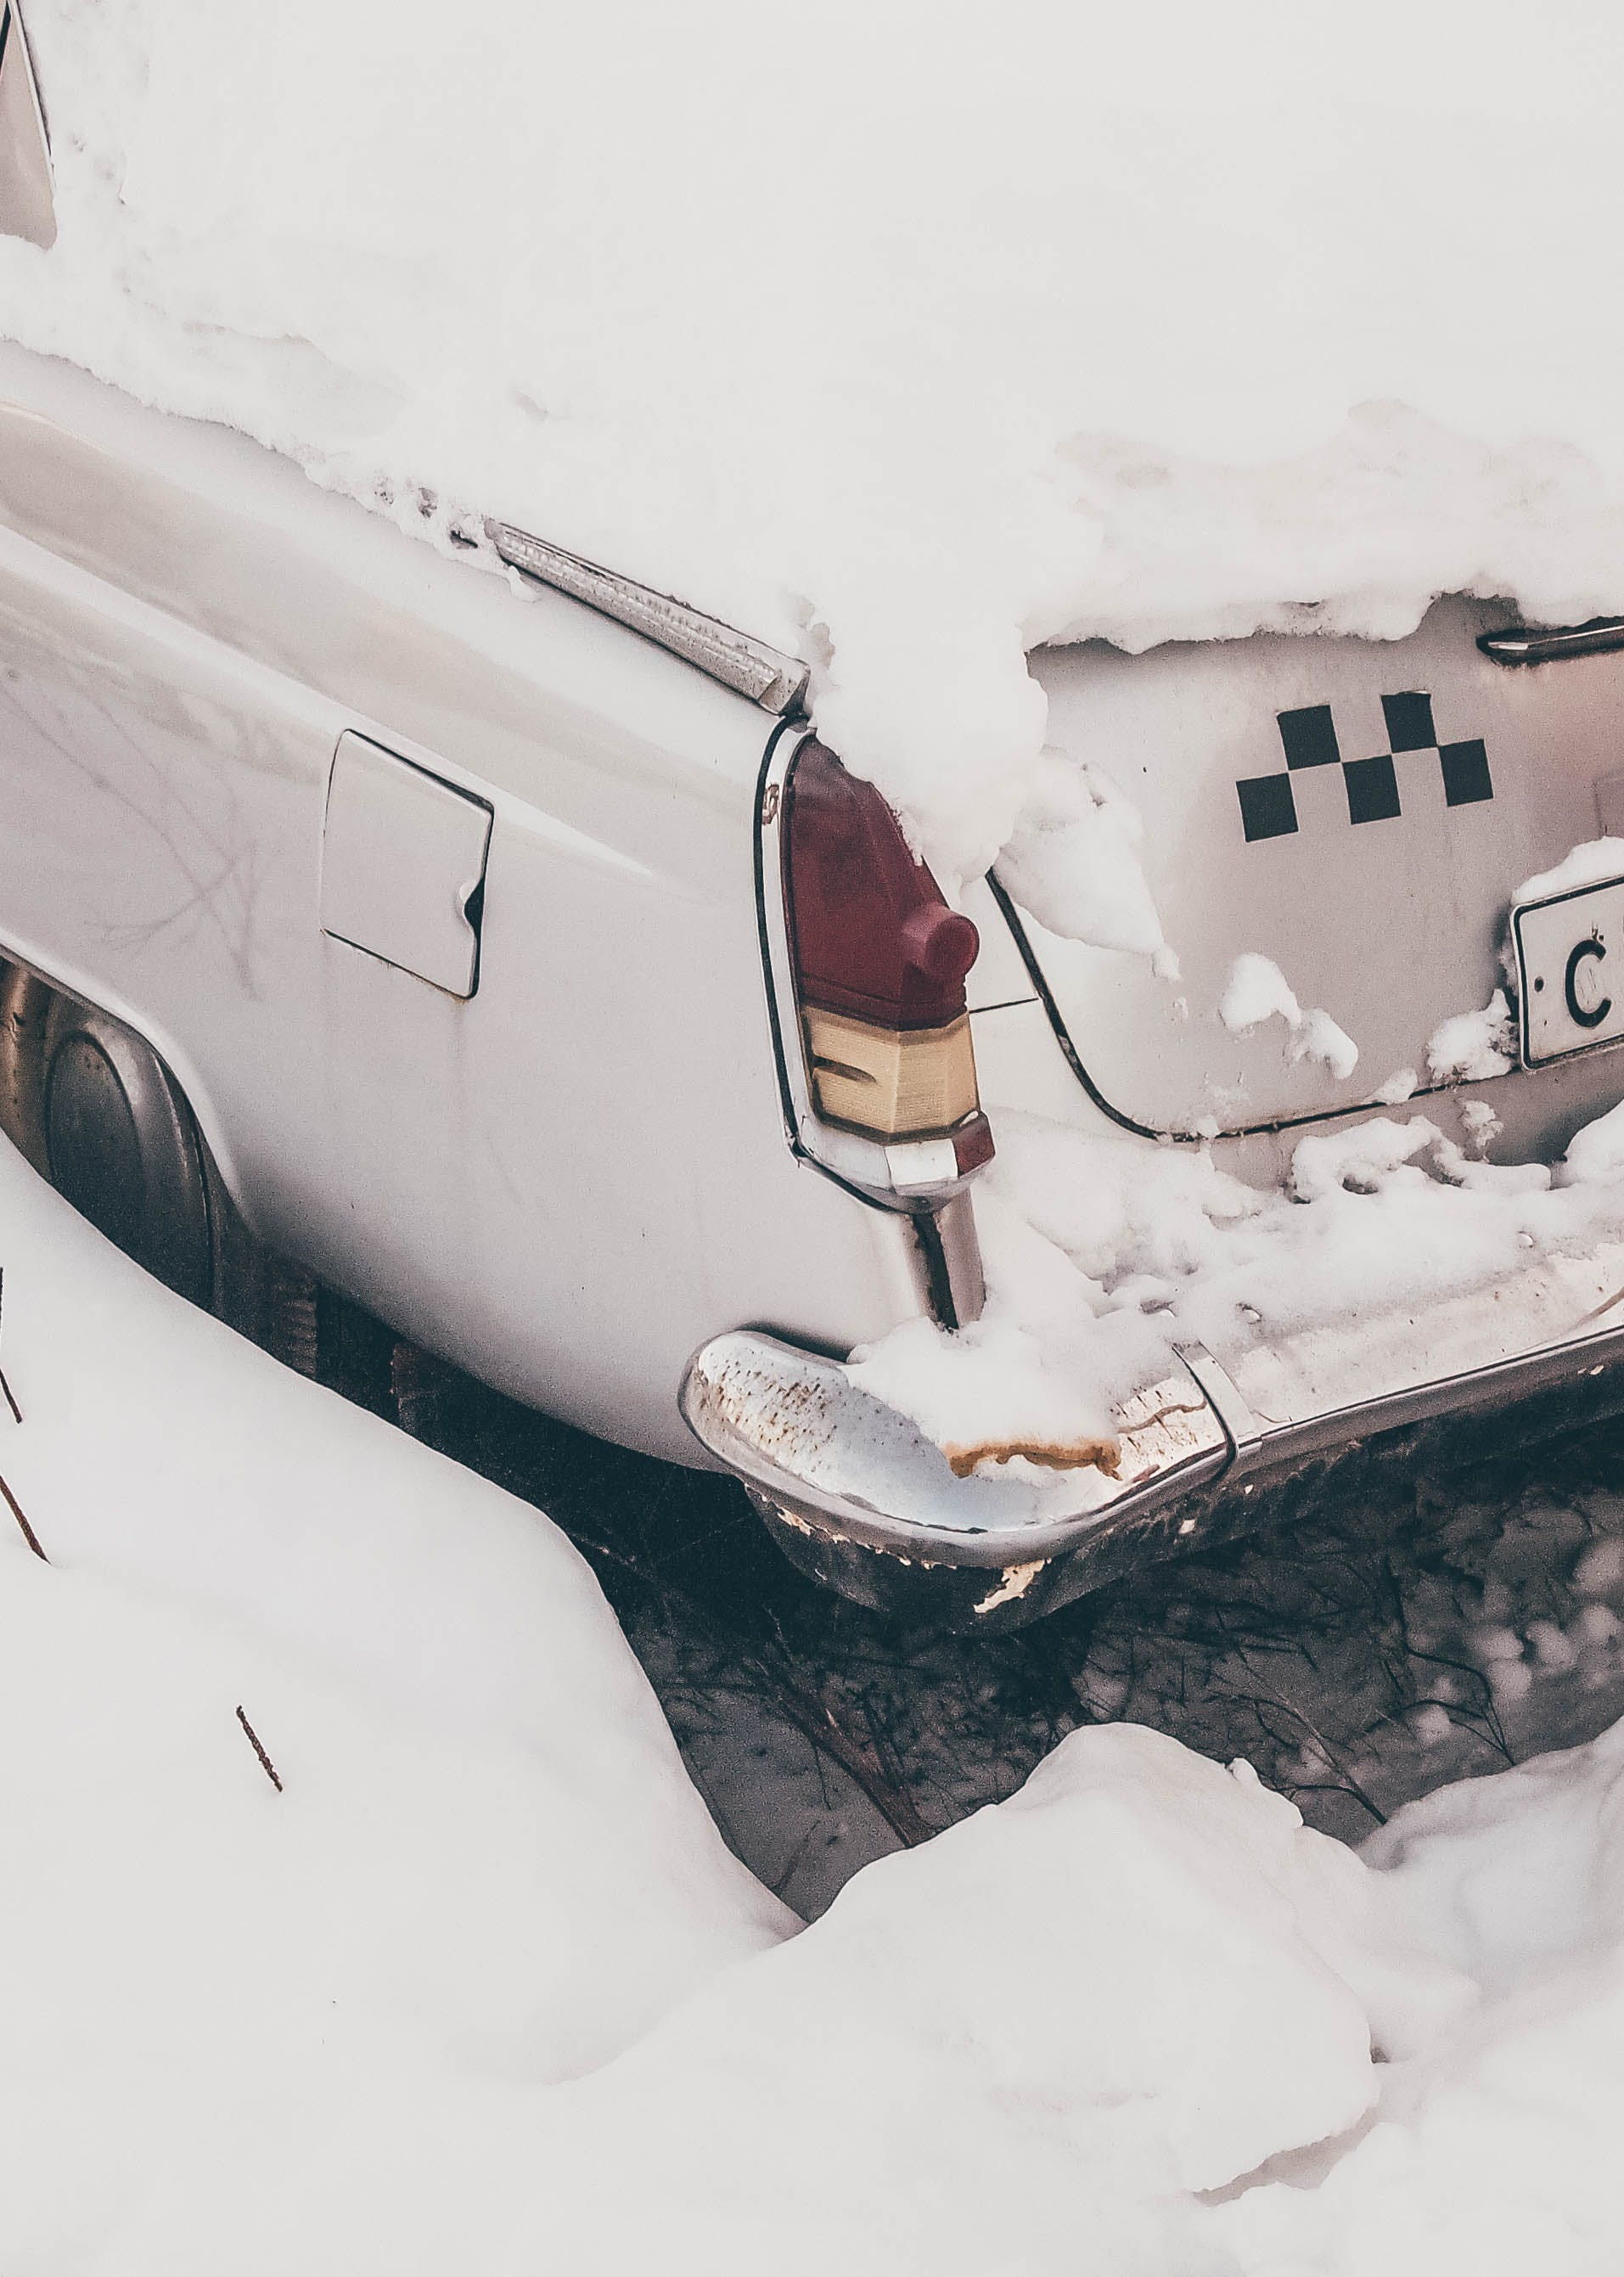 White Car Covered With Snow